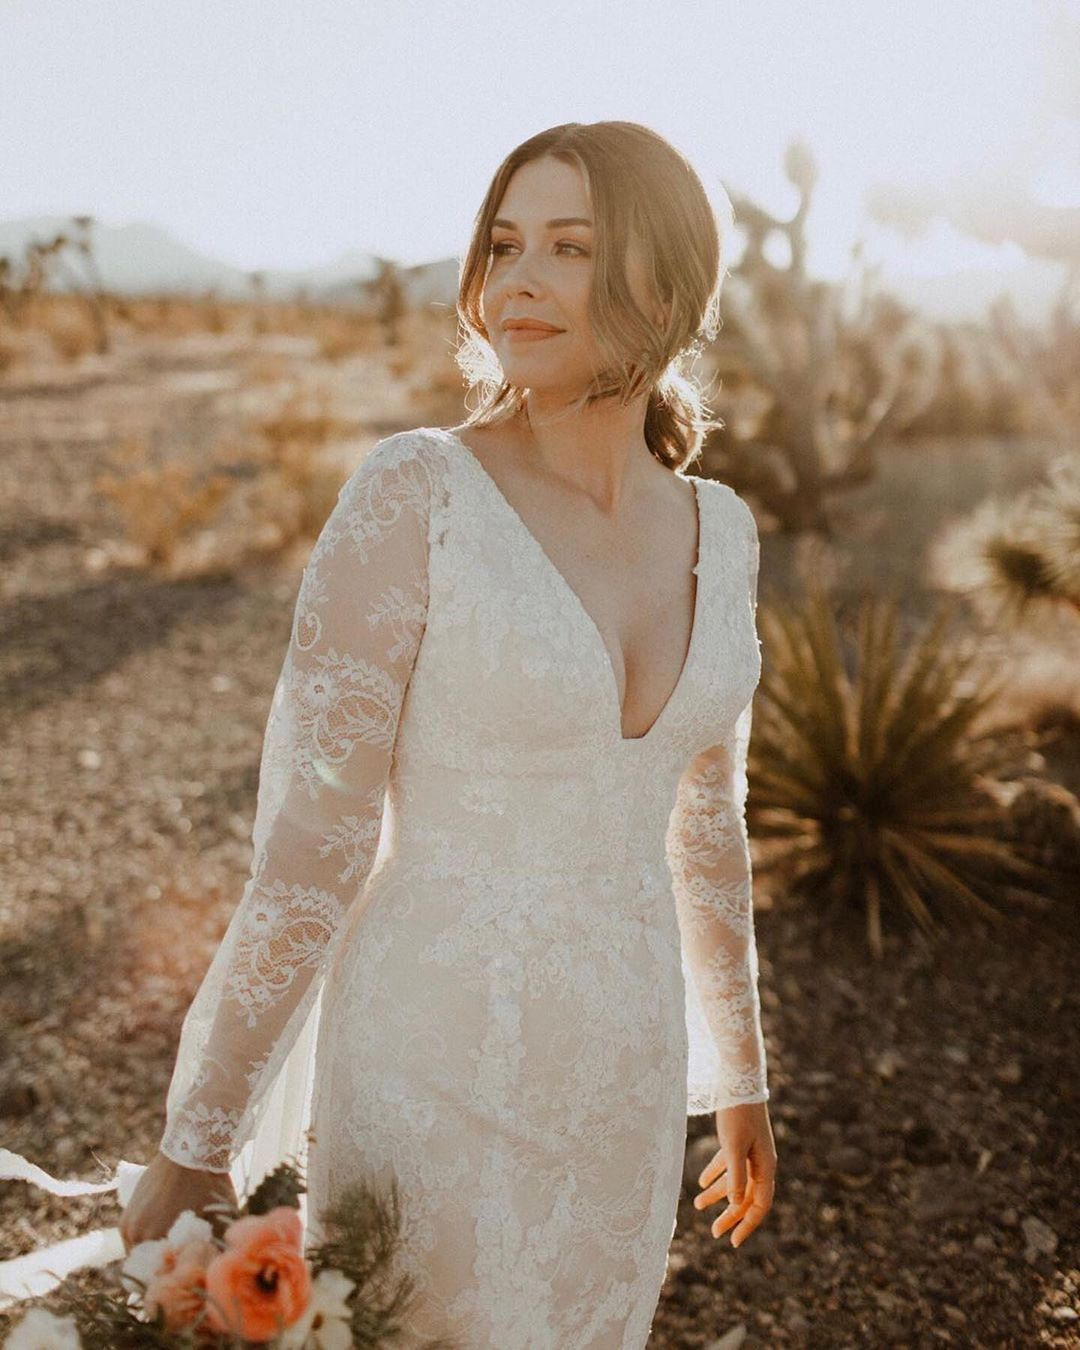 Solo bridal shot in desert